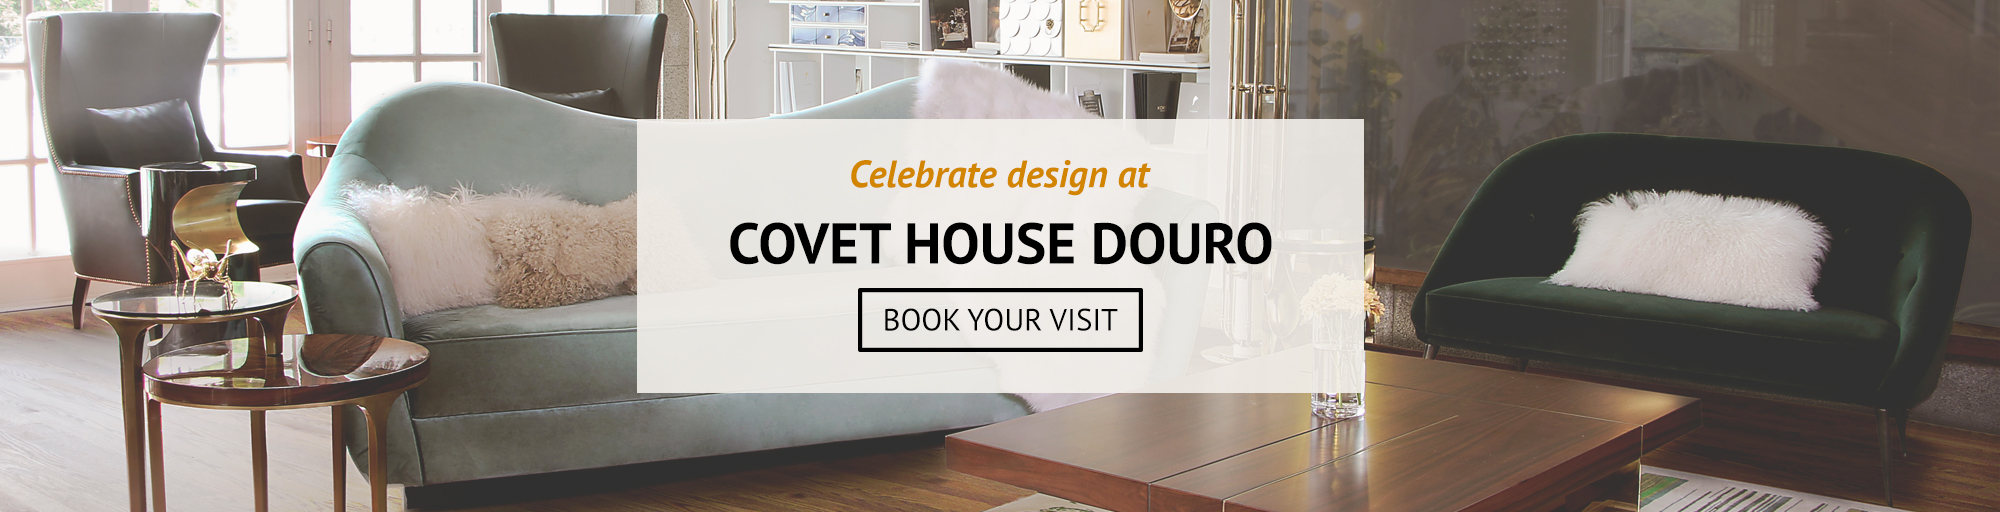 decorating ideas The Most Inspiring Decorating Ideas To Take From Covet House  49191C53D9A9A813E59898F0667FBE1D85F069FE58BFE8D88B pimgpsh fullsize distr